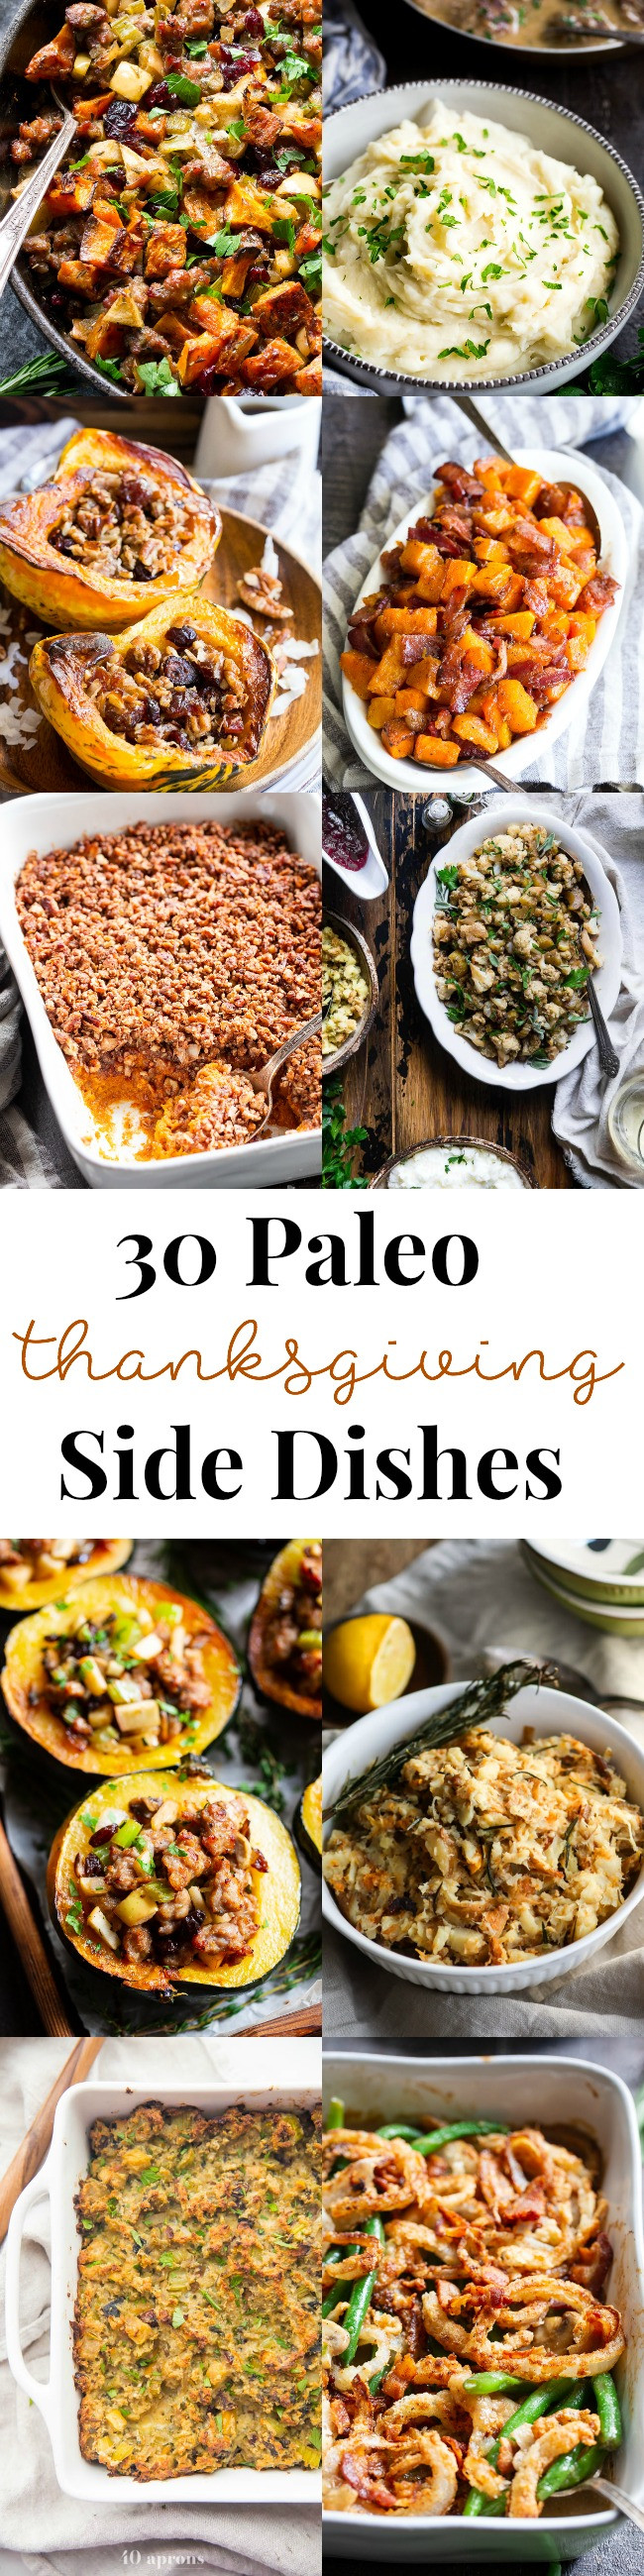 Paleo Thanksgiving Sides  30 Paleo Thanksgiving Side Dishes